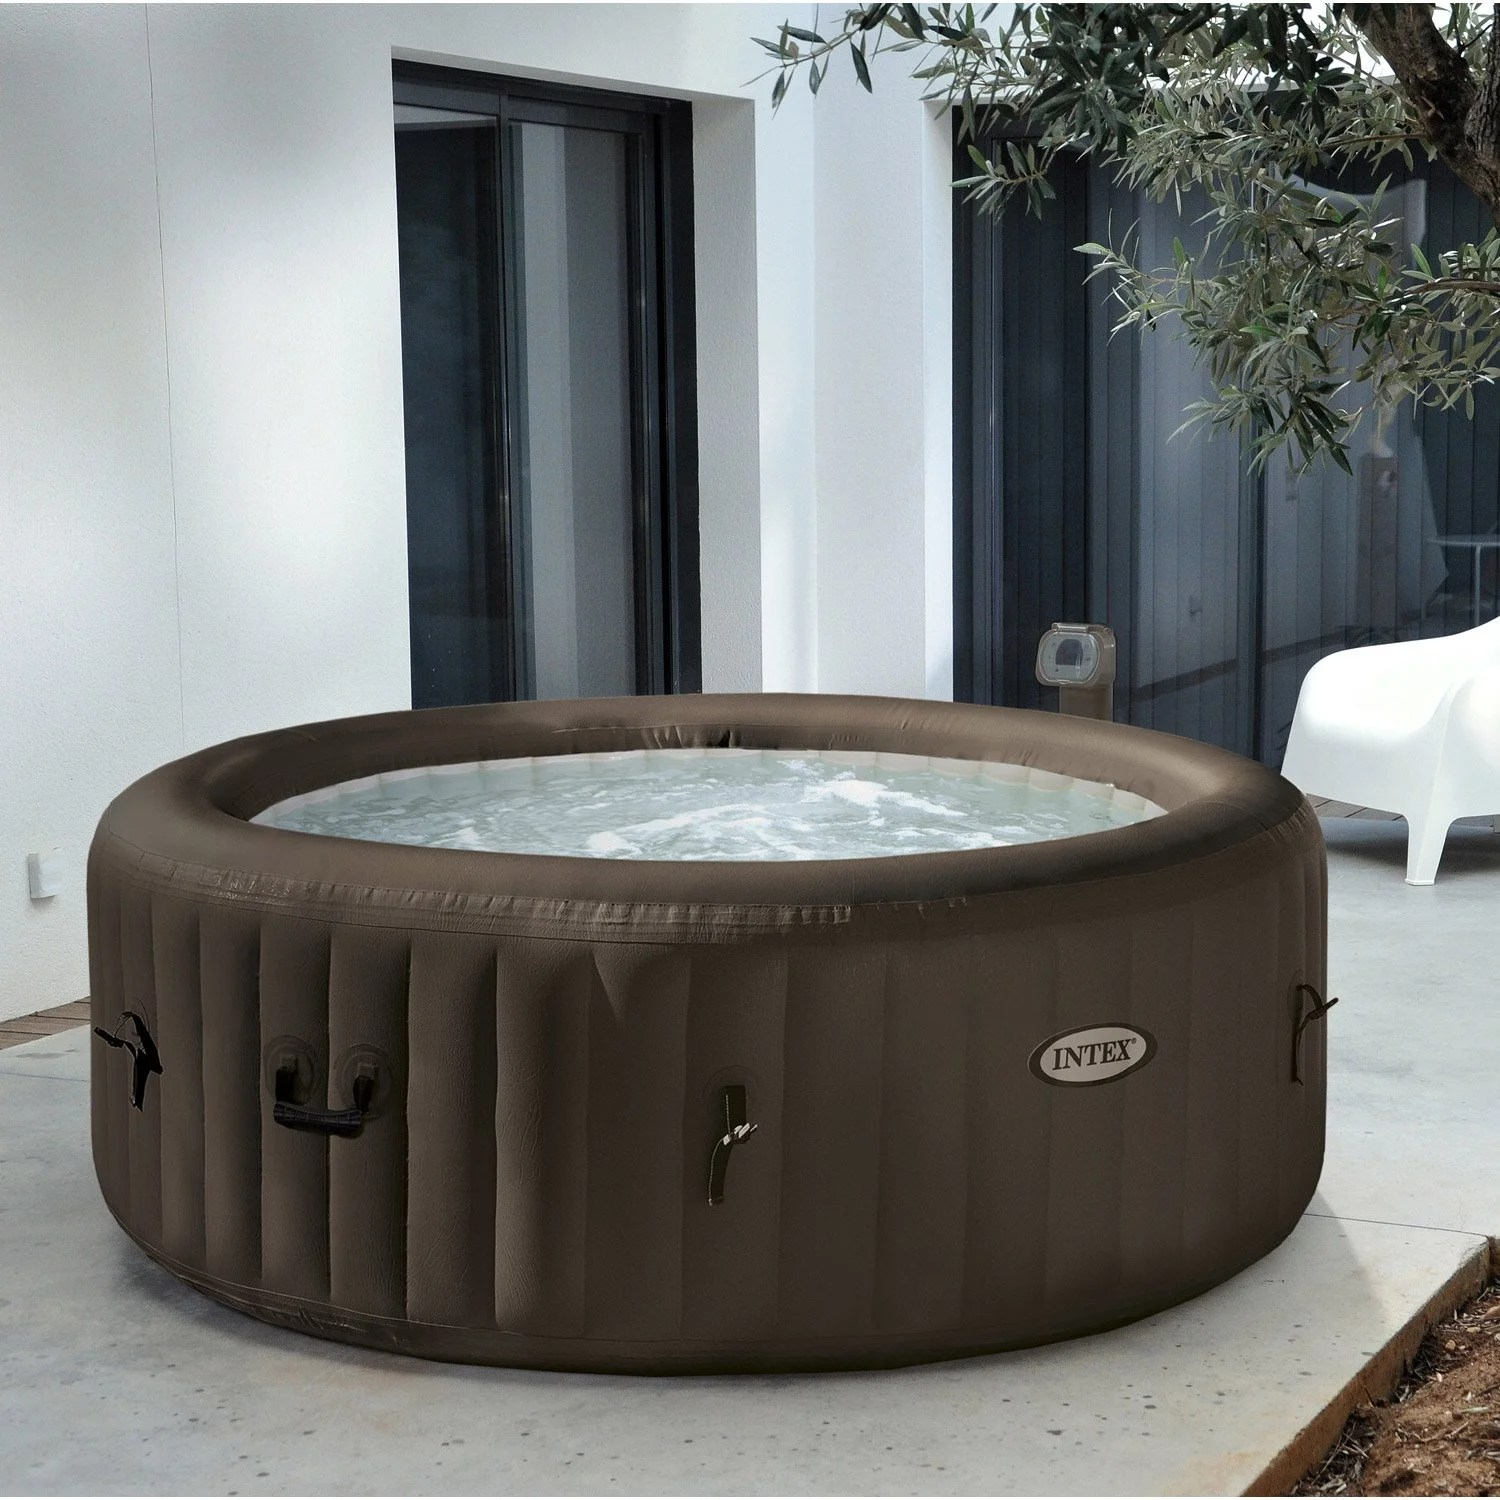 Amenagement Exterieur Spa Gonflable Spa Gonflable Intex Purespa Jets Rond 4 Places Assises